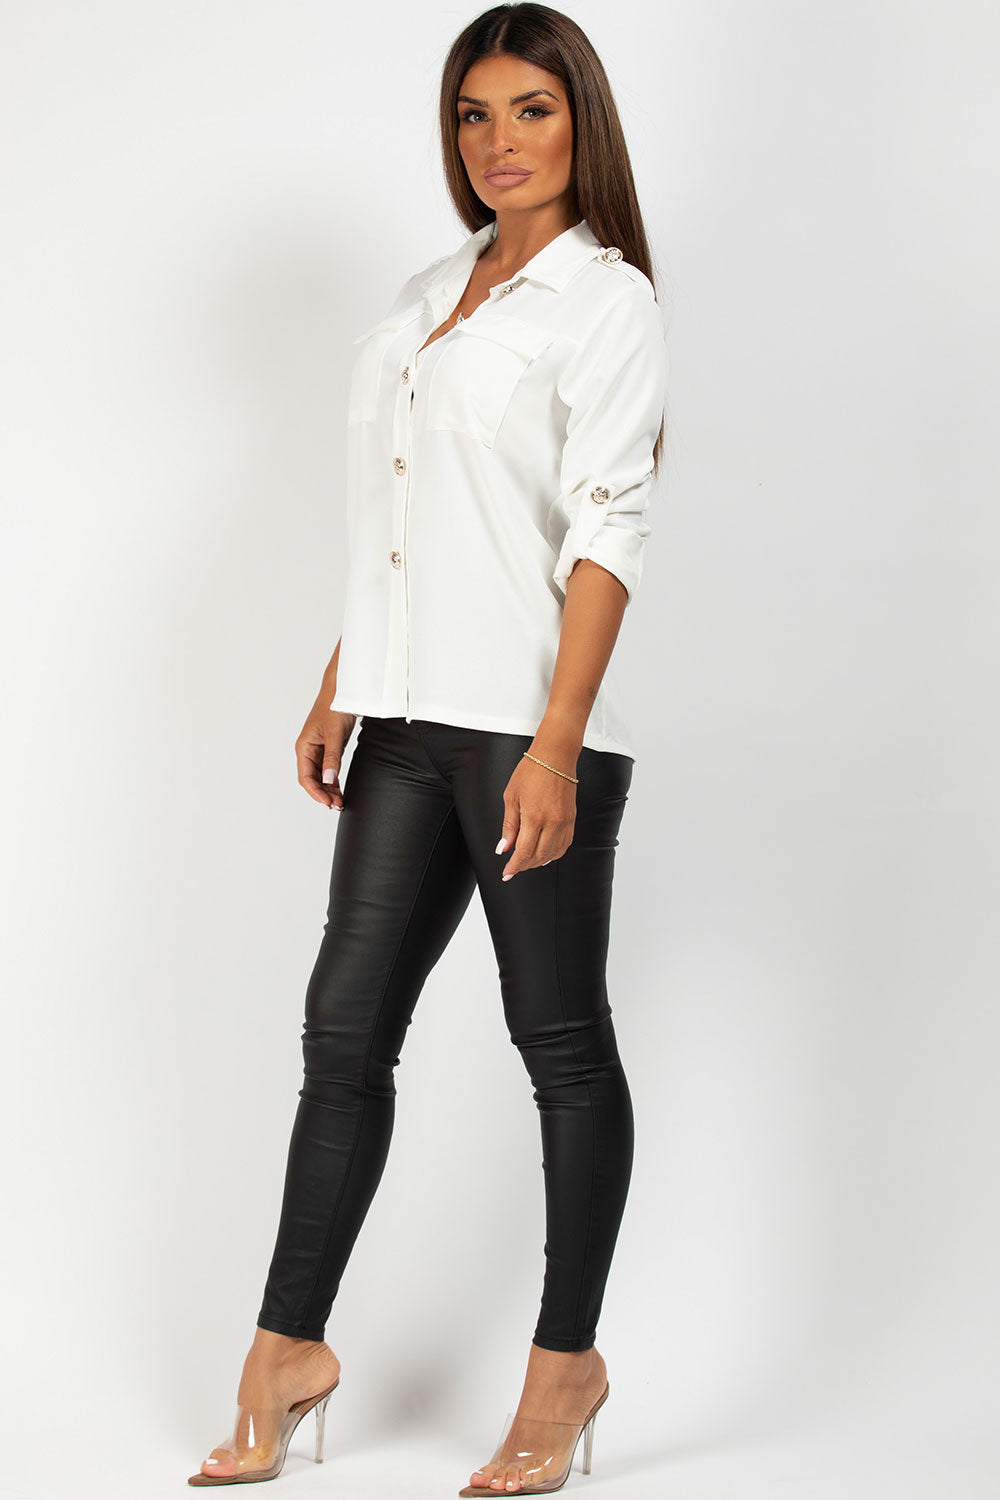 white shirt with gold button detail